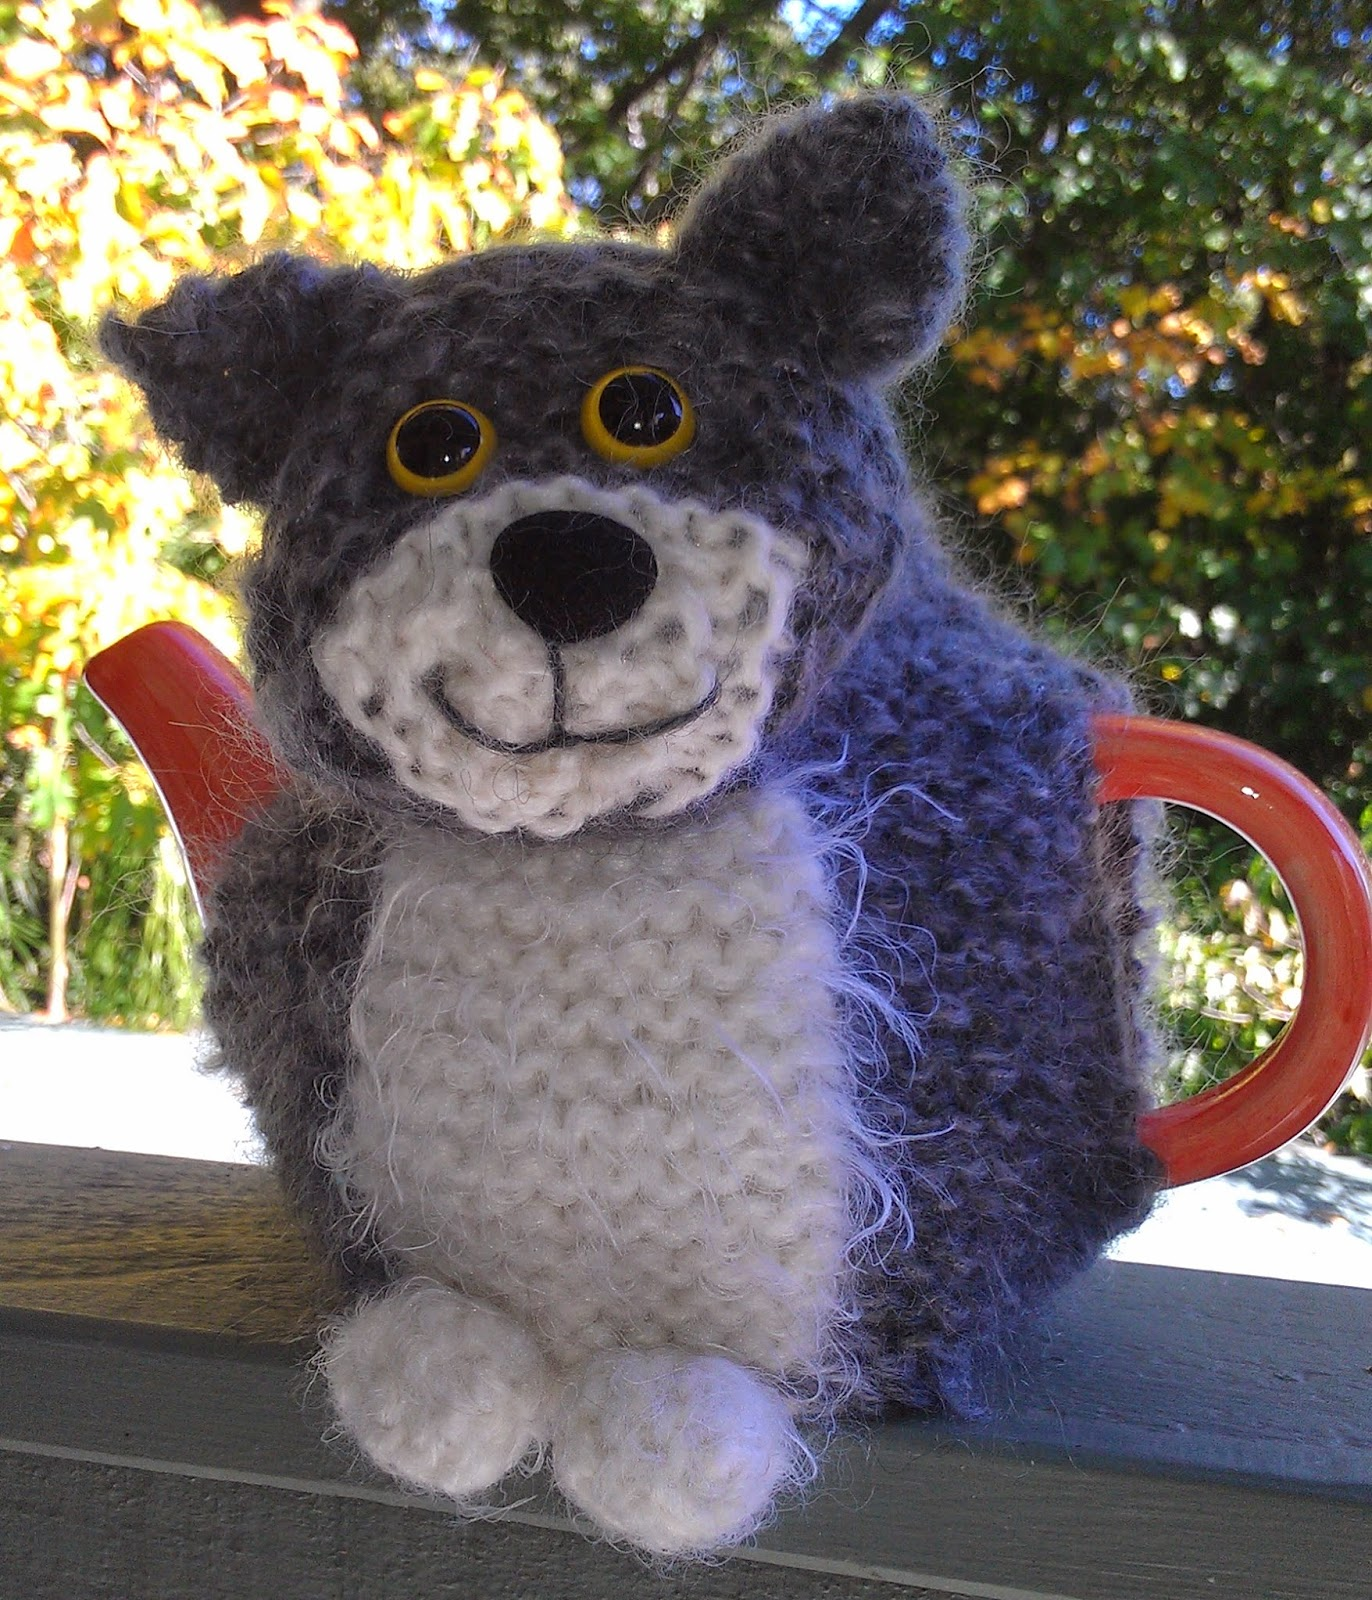 Free Patterns For Loom Knitting : Craft a cure for cancer free tea cosy patterns: Oliver Cat tea cosy